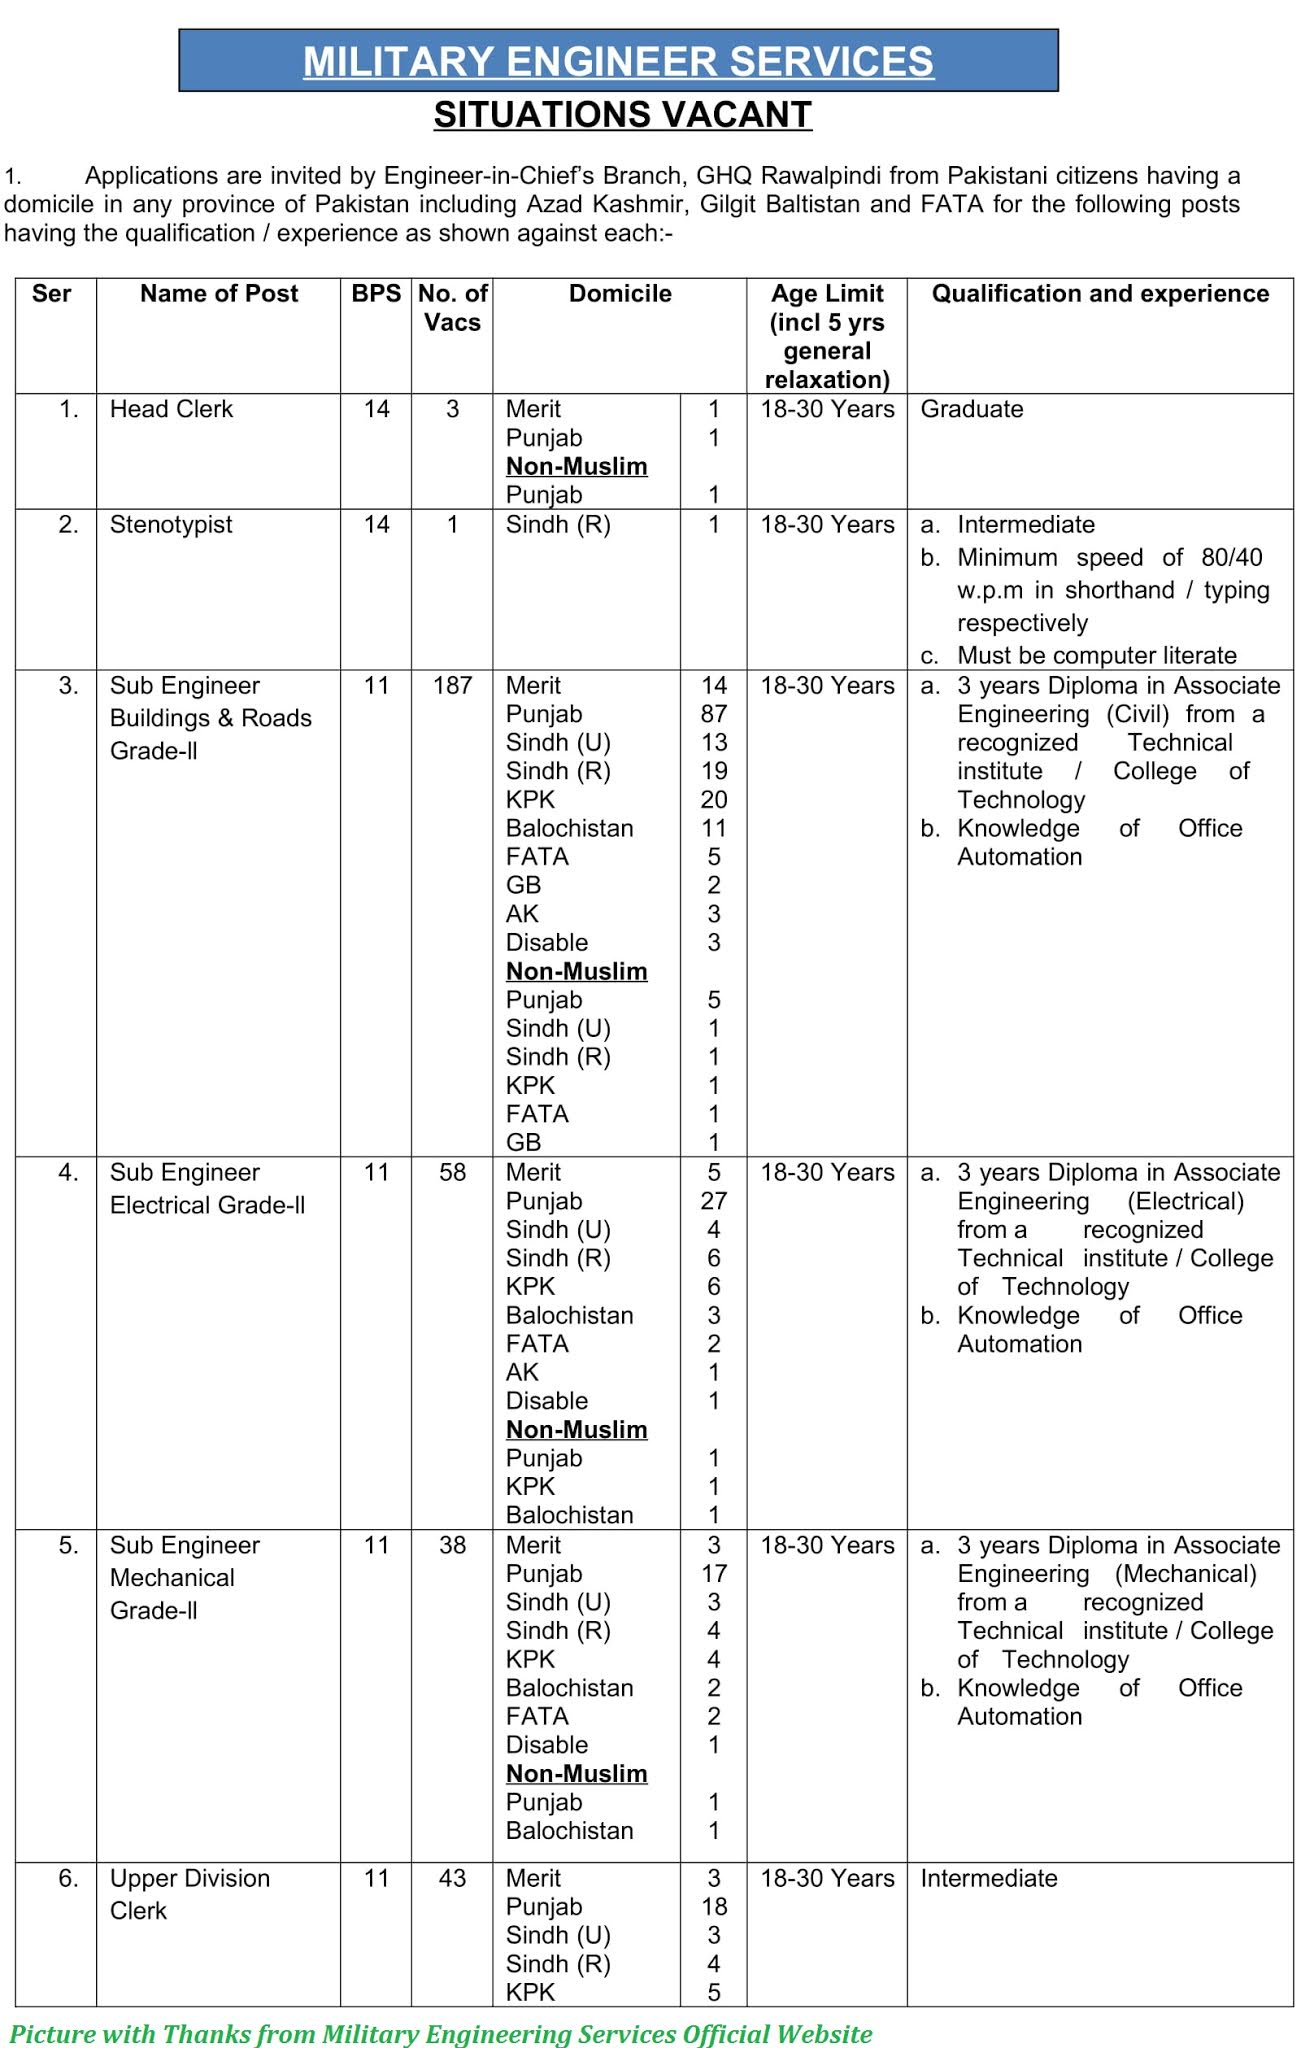 Military Engineering Services Jobs 2020 - Latest Jobs in Military Engineering Services www.mes.gov.pk